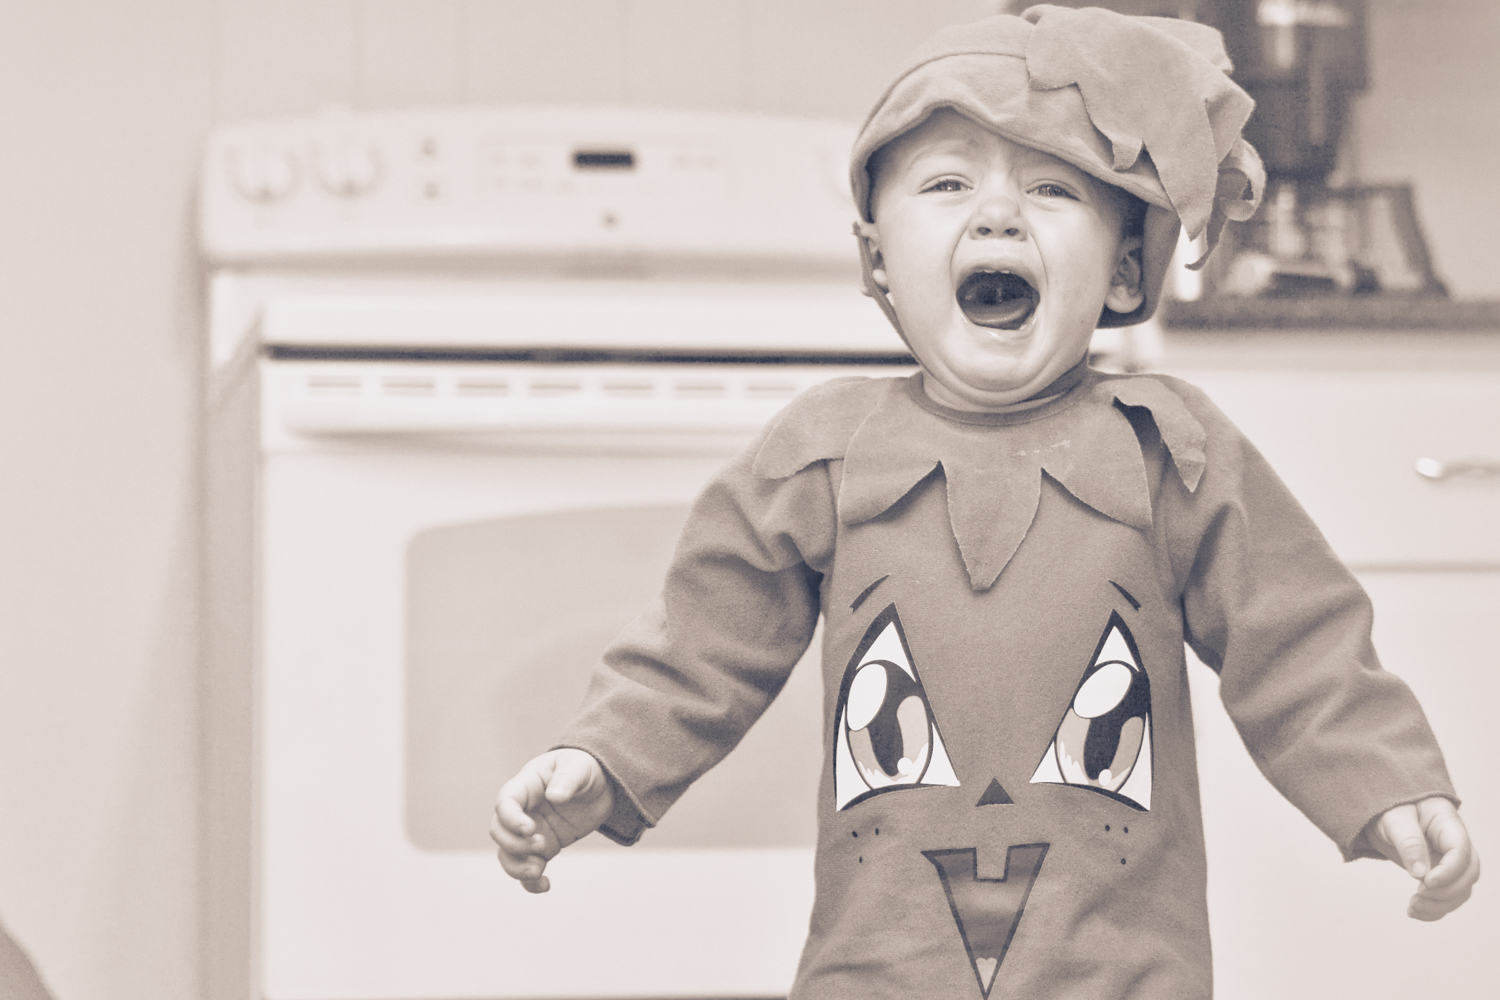 A little boy in a costume crying.